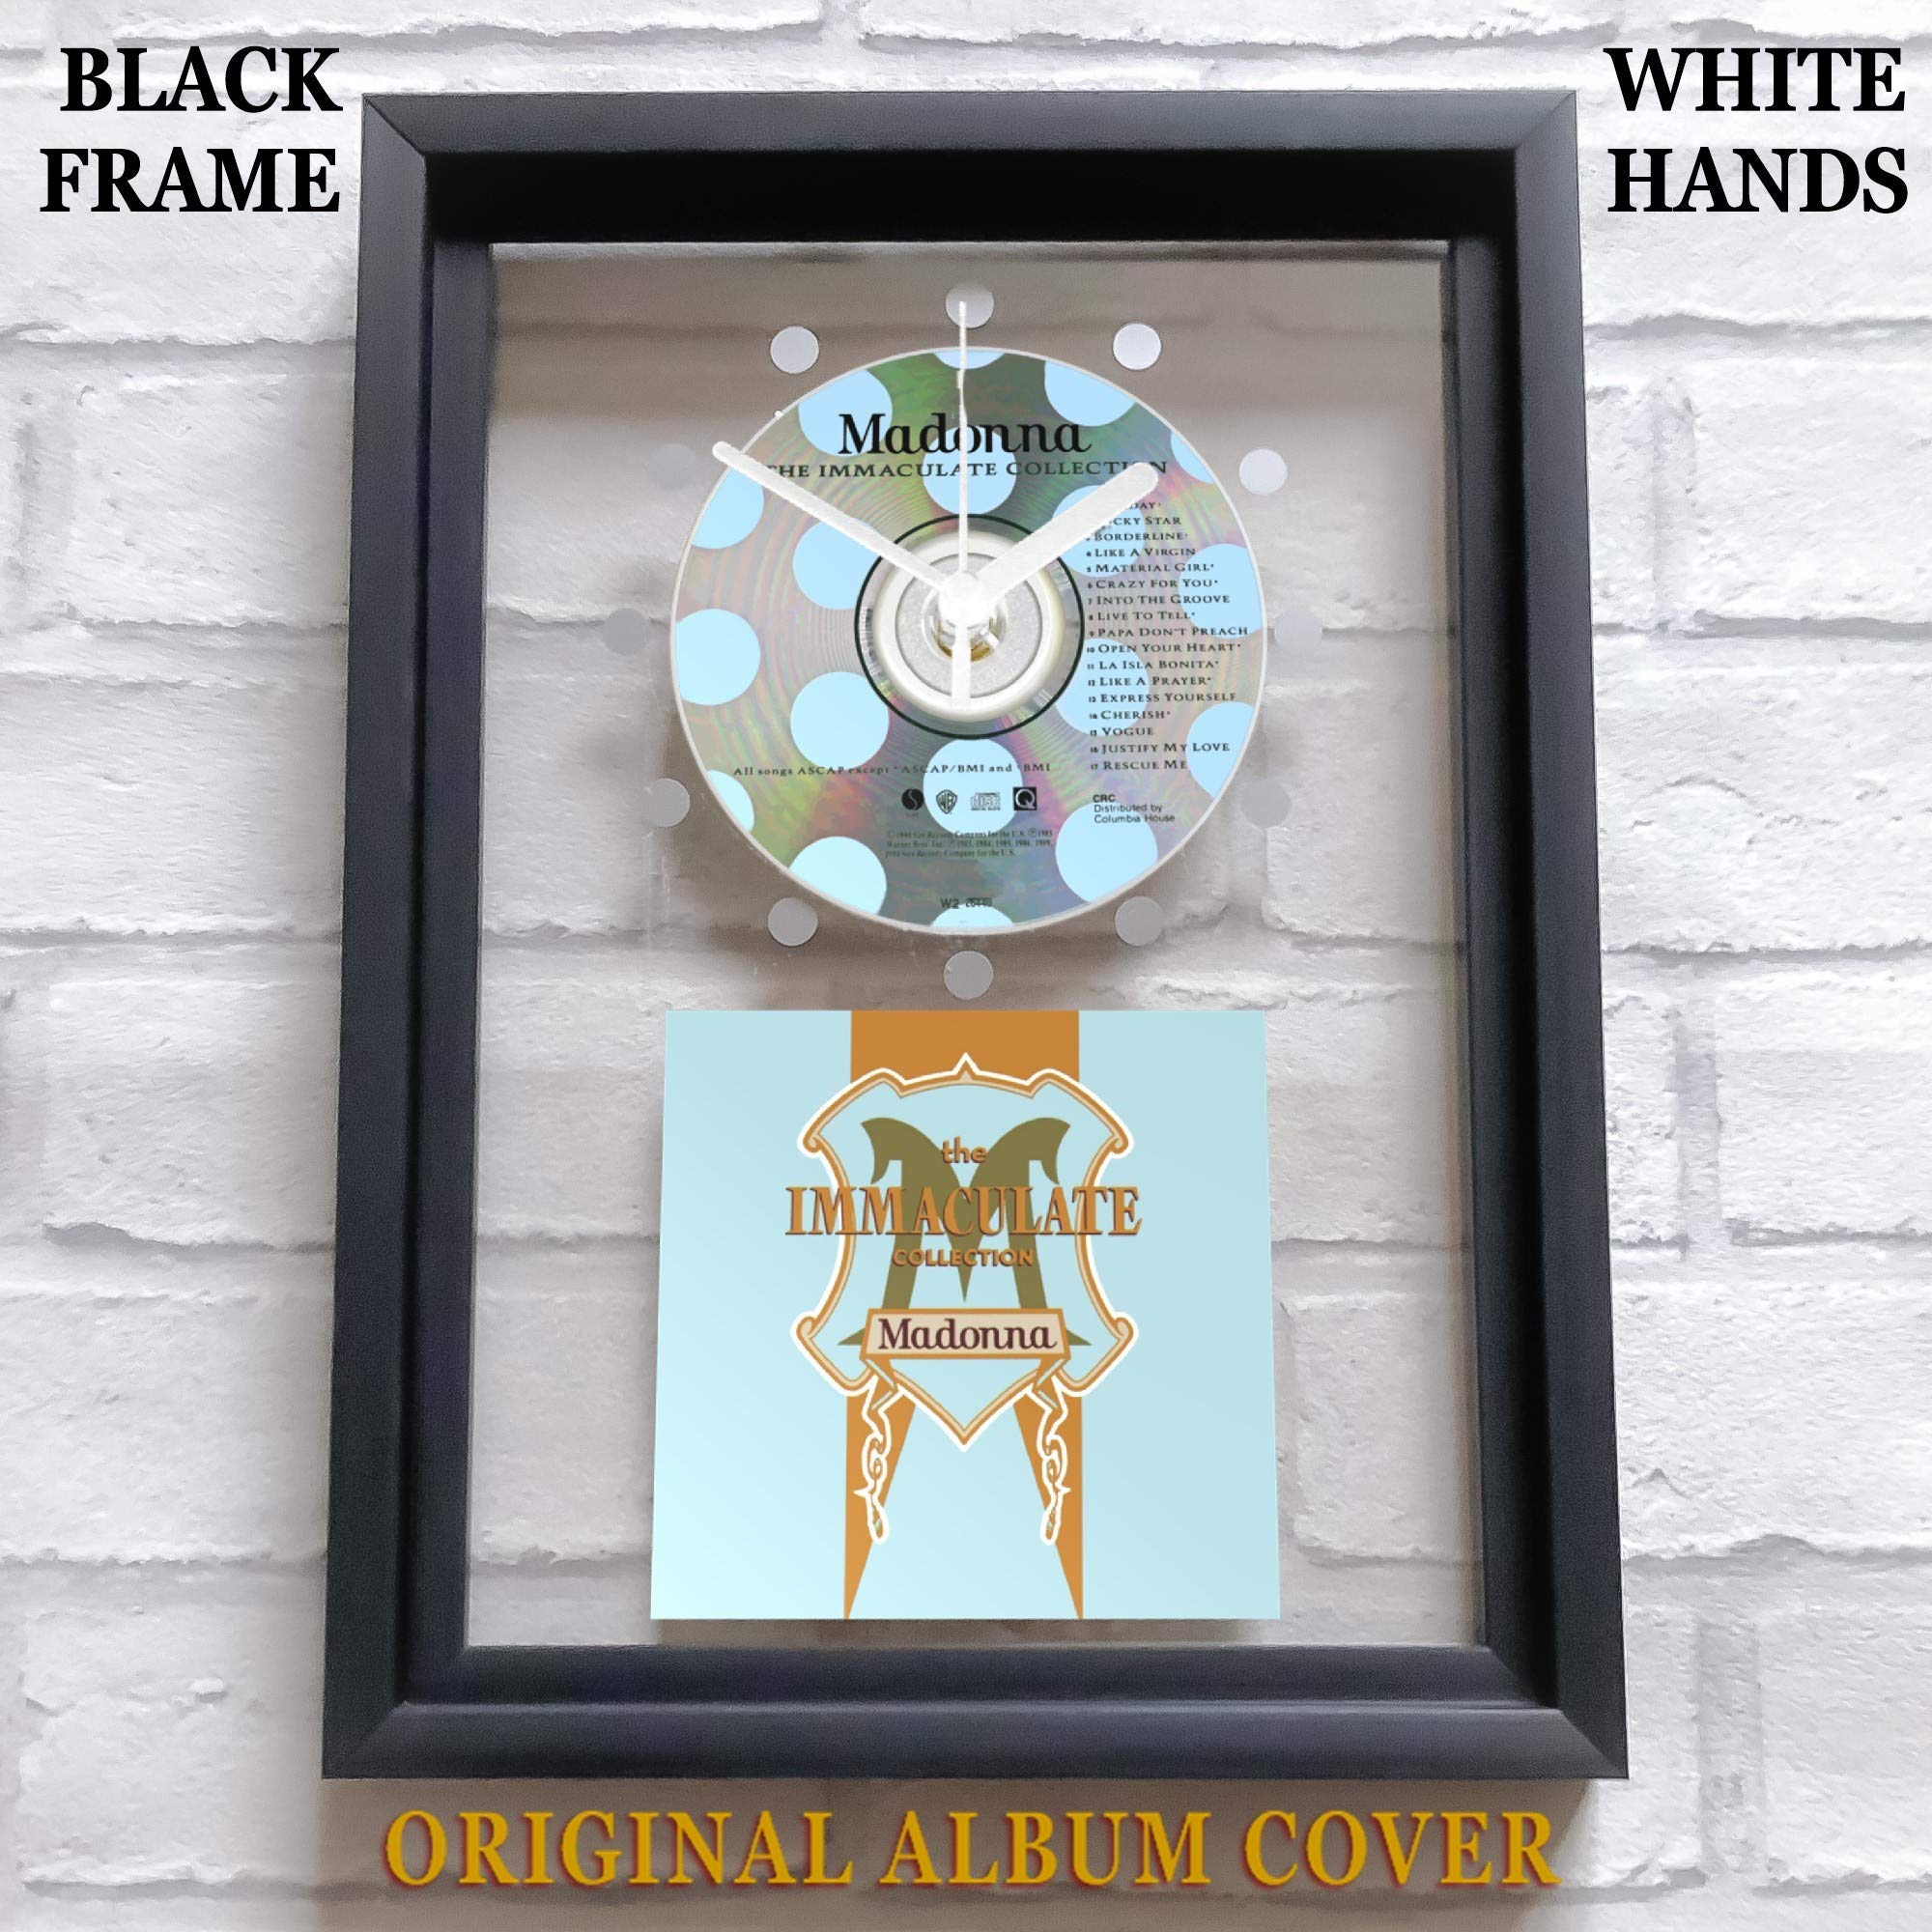 MADONNA - The Immaculate Collection: FRAMED CD ART CLOCK/Exclusive Design -  Top Handmade   Furniture   Gifts   Toys   Homeware